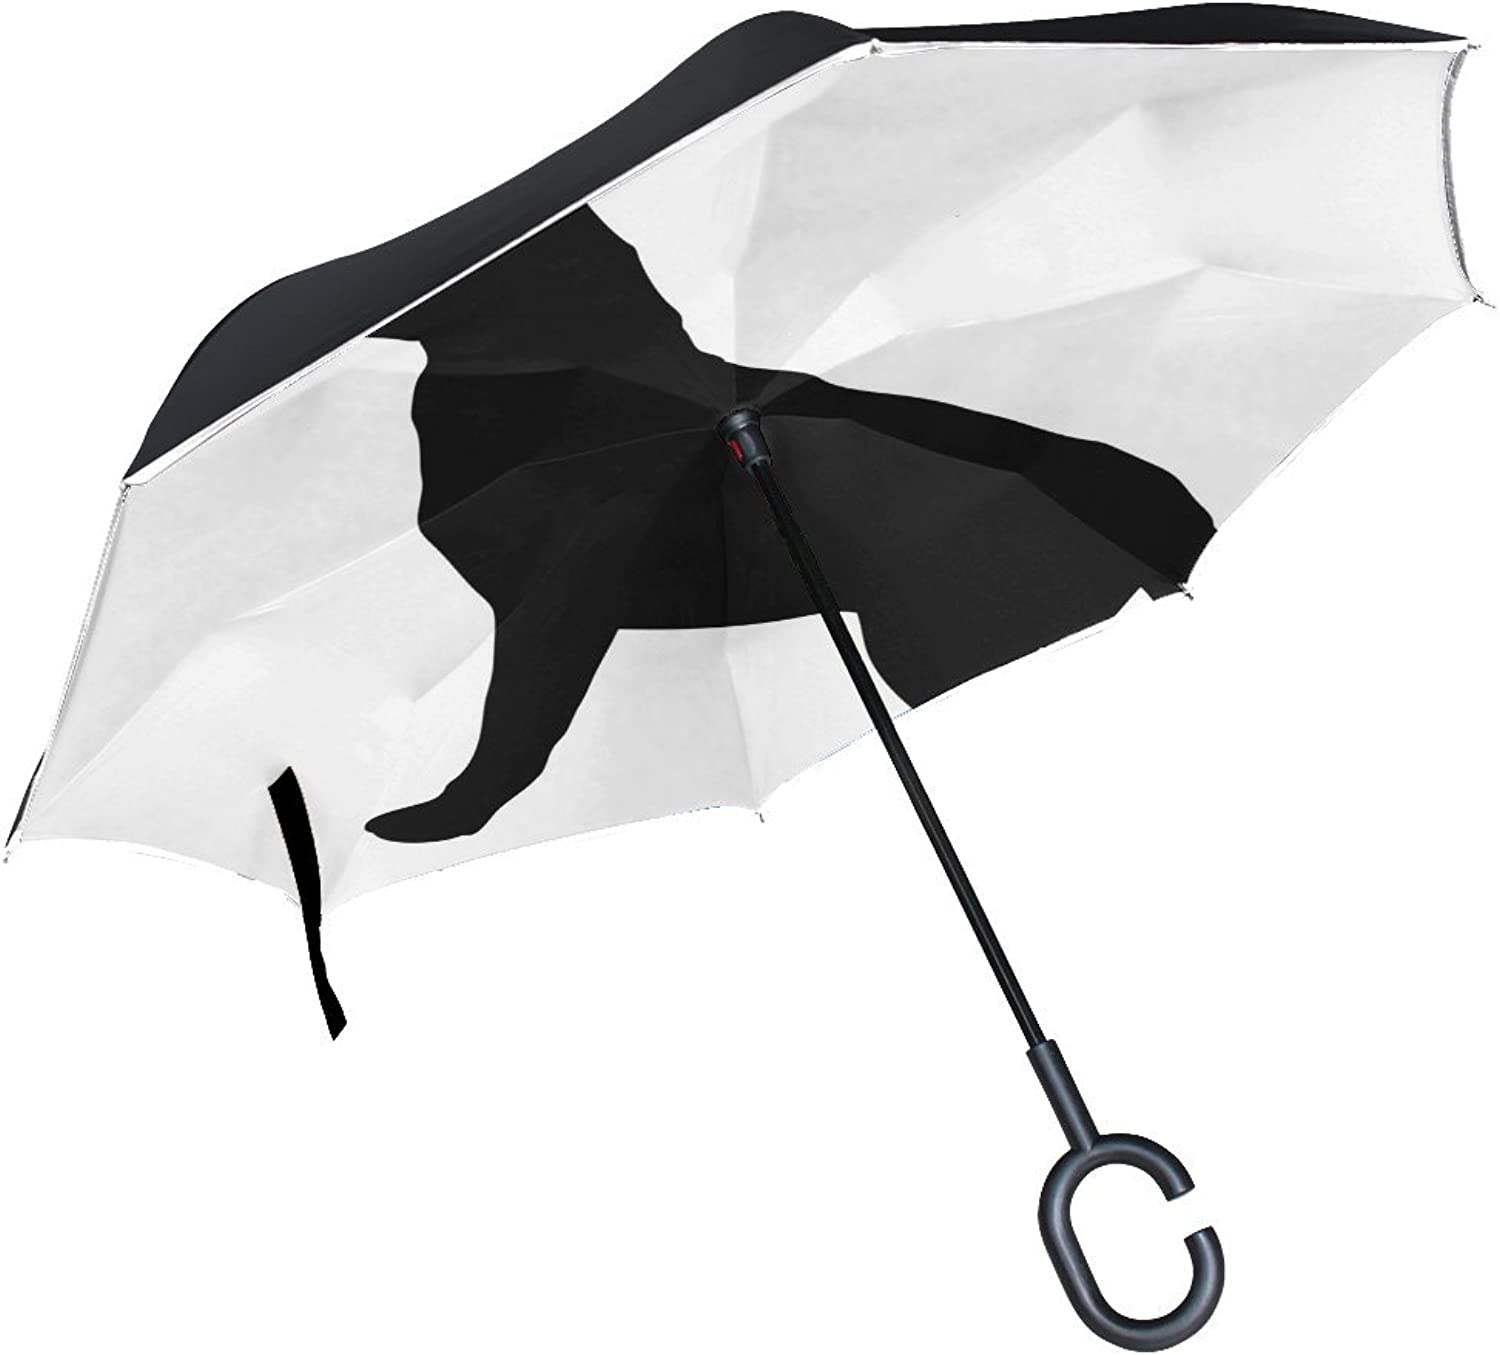 Animal Dog German Shepherd Blackandwhite Black Puppy Animated Sketch Drawing Ingreened Umbrella Large Double Layer Outdoor Rain Sun Car Reversible Umbrella